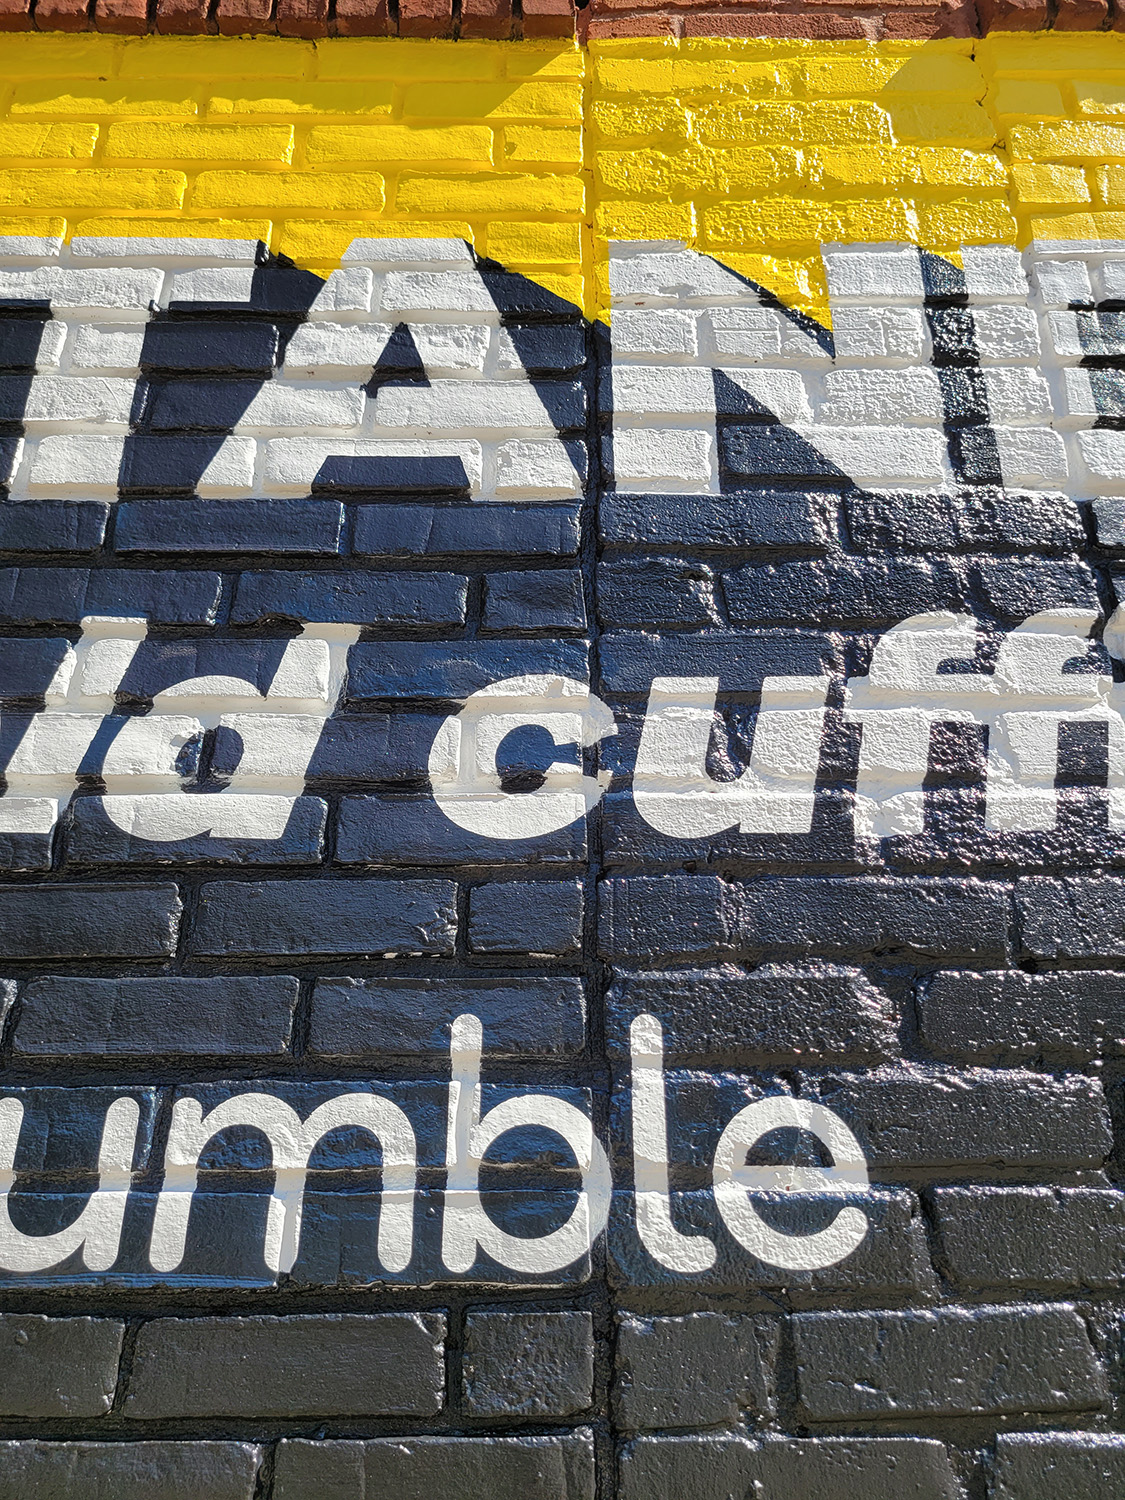 bold text mural zoom in